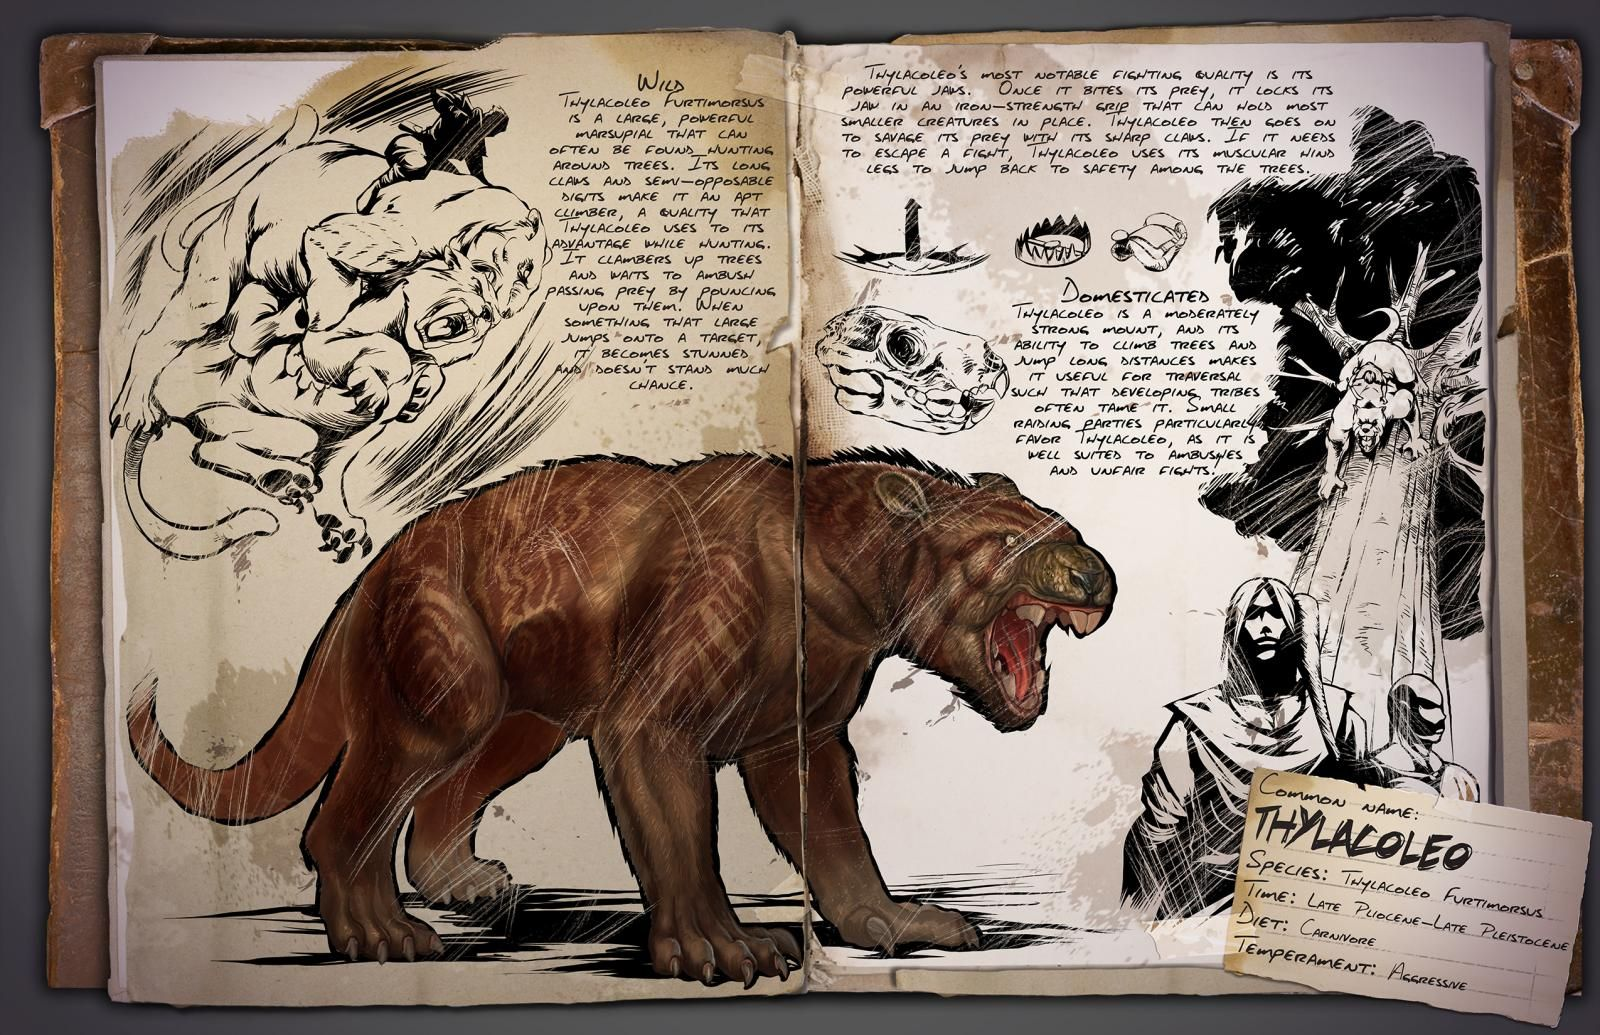 Ark survival evolved patch notes - Ark Survival Evolved The Game Where Your Wildest Dreams Come True You Know